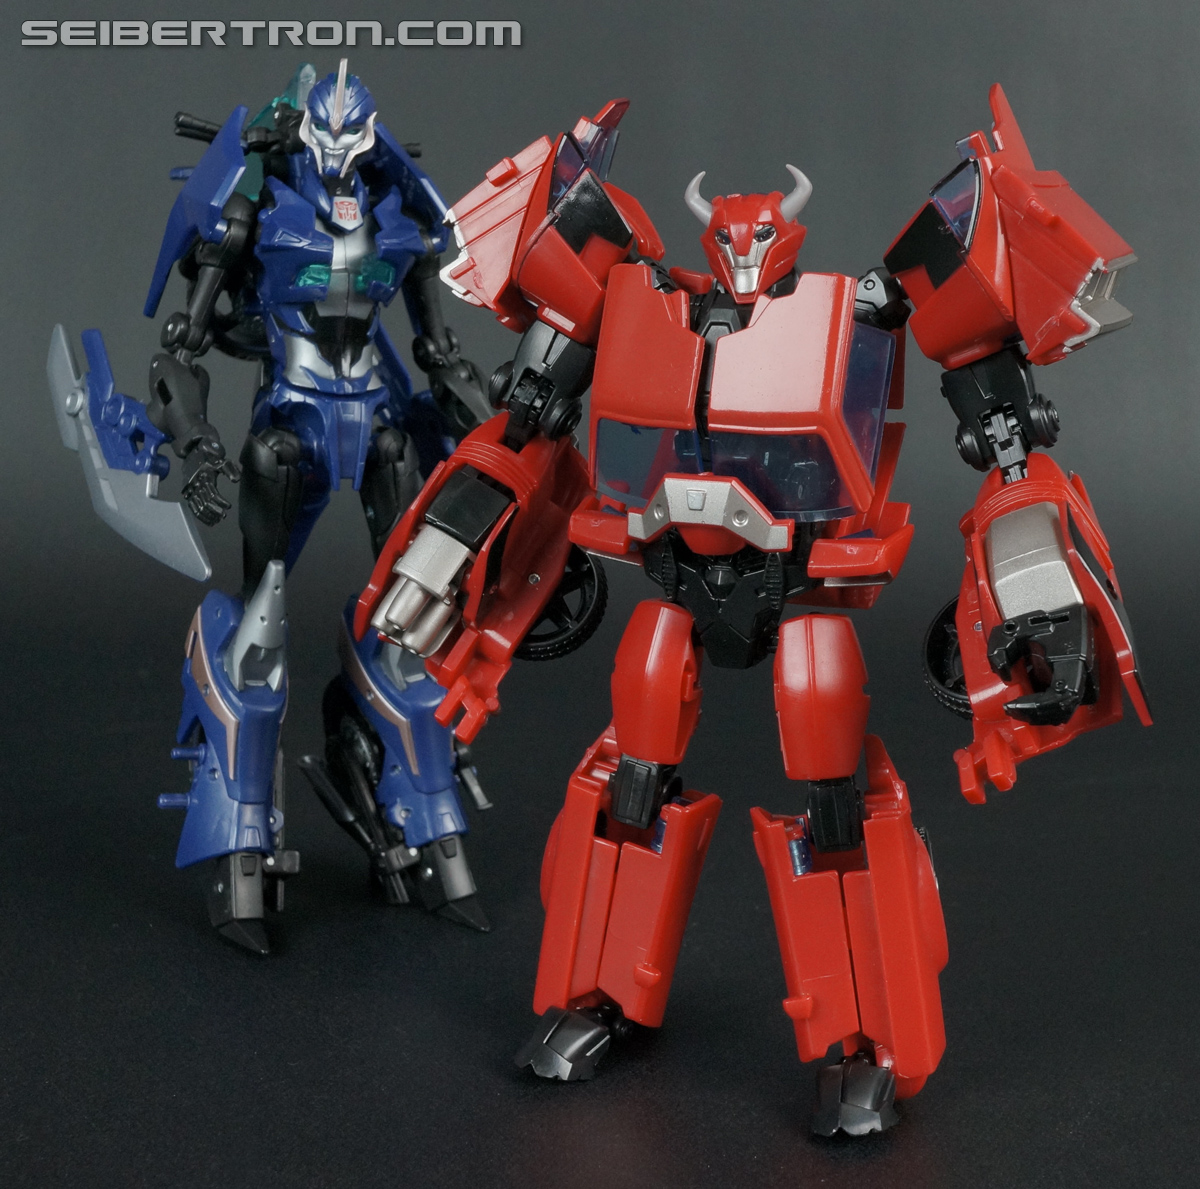 Transformers Prime: First Edition Cliffjumper (Image #127 of 164)